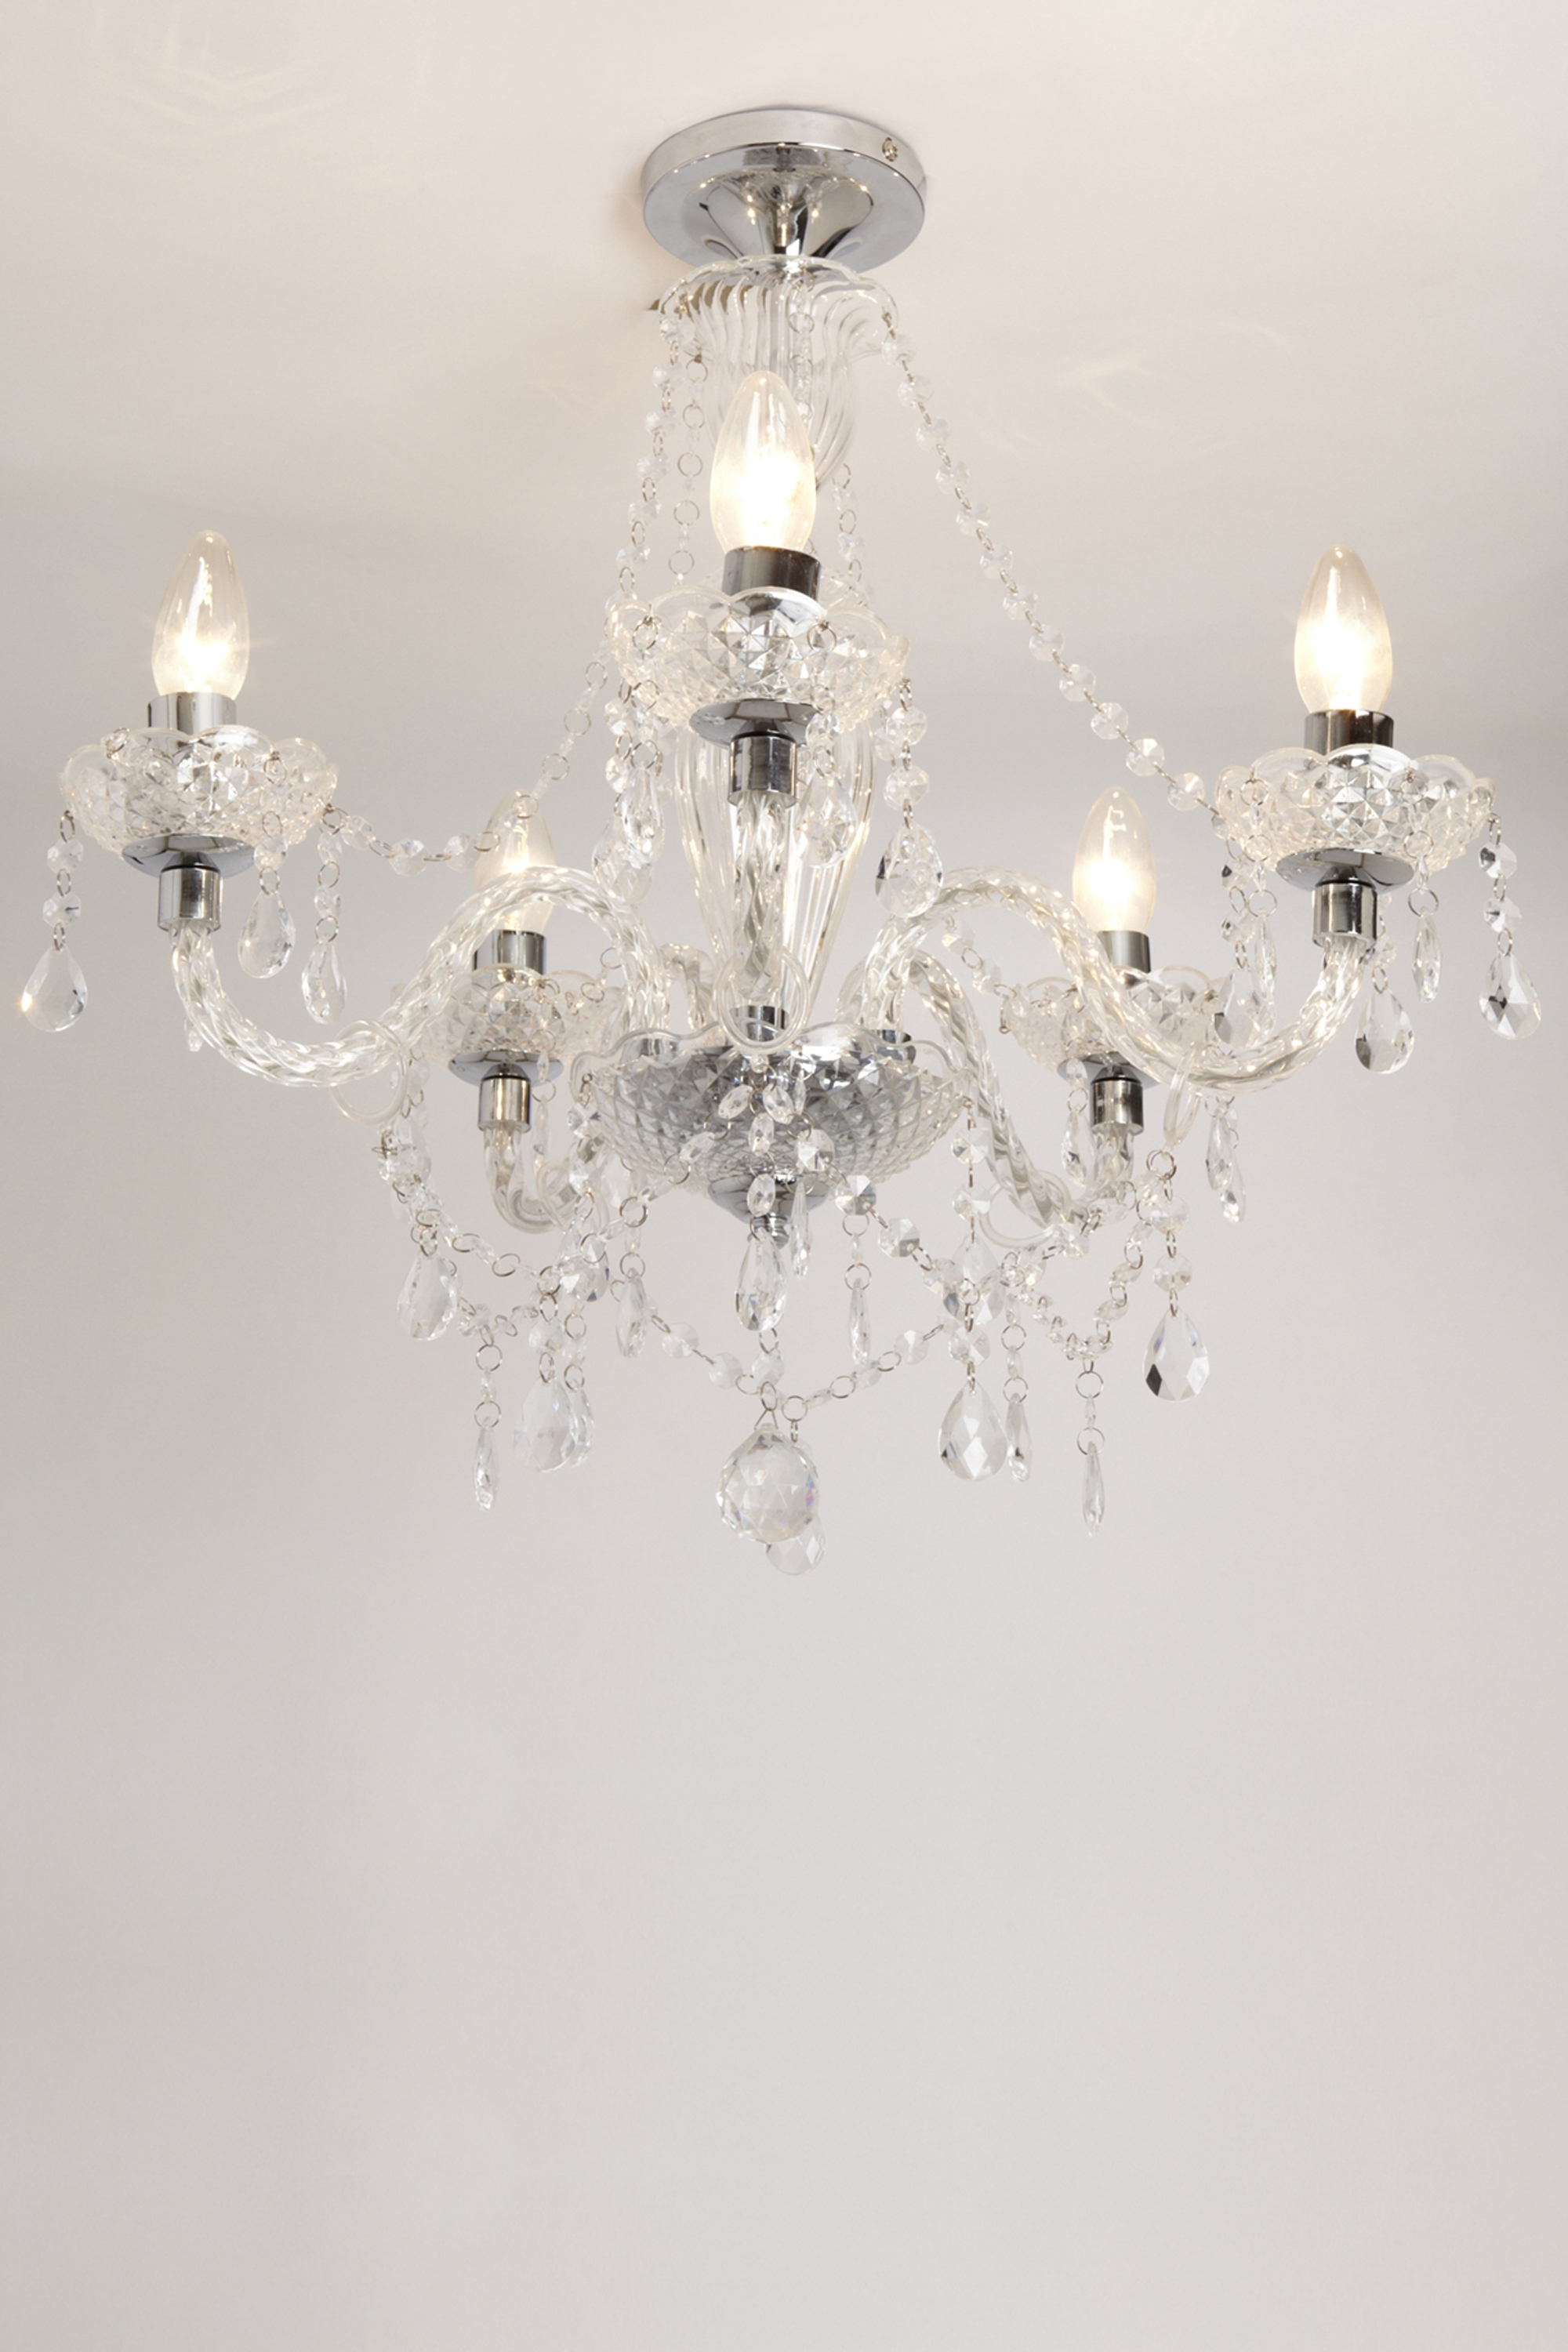 Flush Fitting Chandeliers With Regard To 2018 Sapparia 5 Light Flush Chandelier Bhs, £60 (Was £120), Living (View 10 of 20)